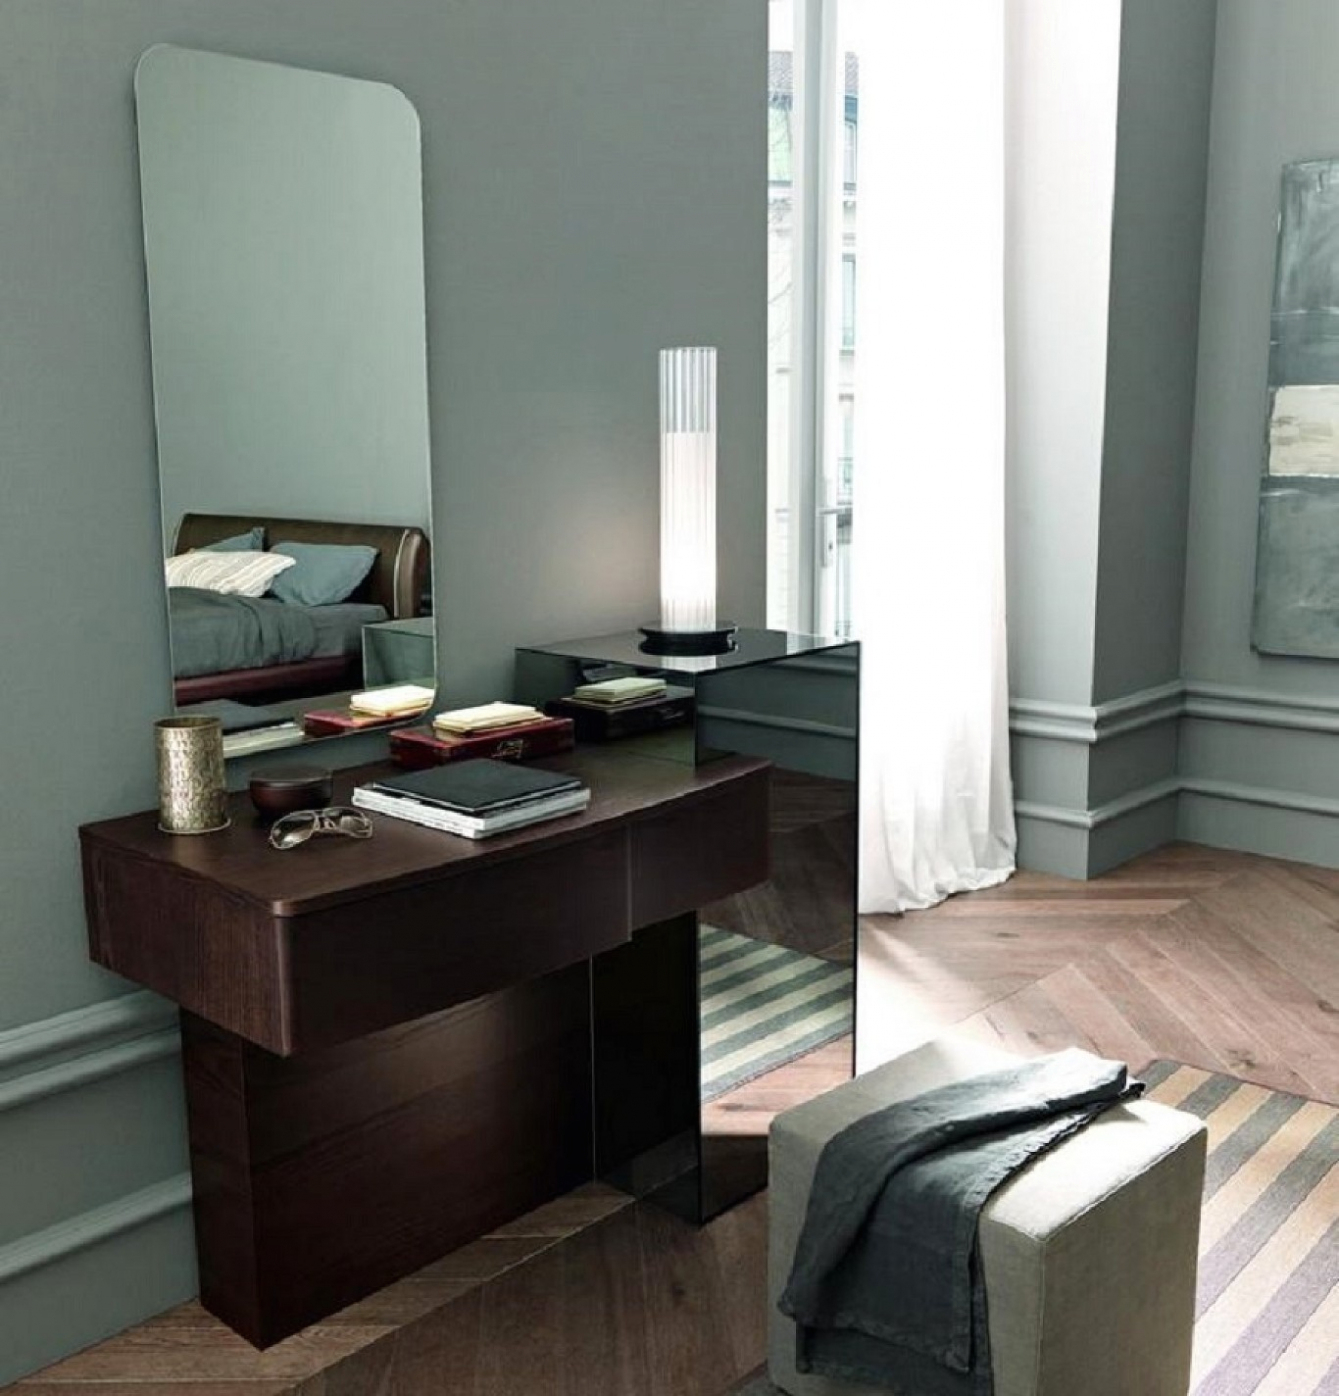 Alluring Modern Bedroom Vanity Your House Idea Iorpheus intended for Modern Bedroom Vanity